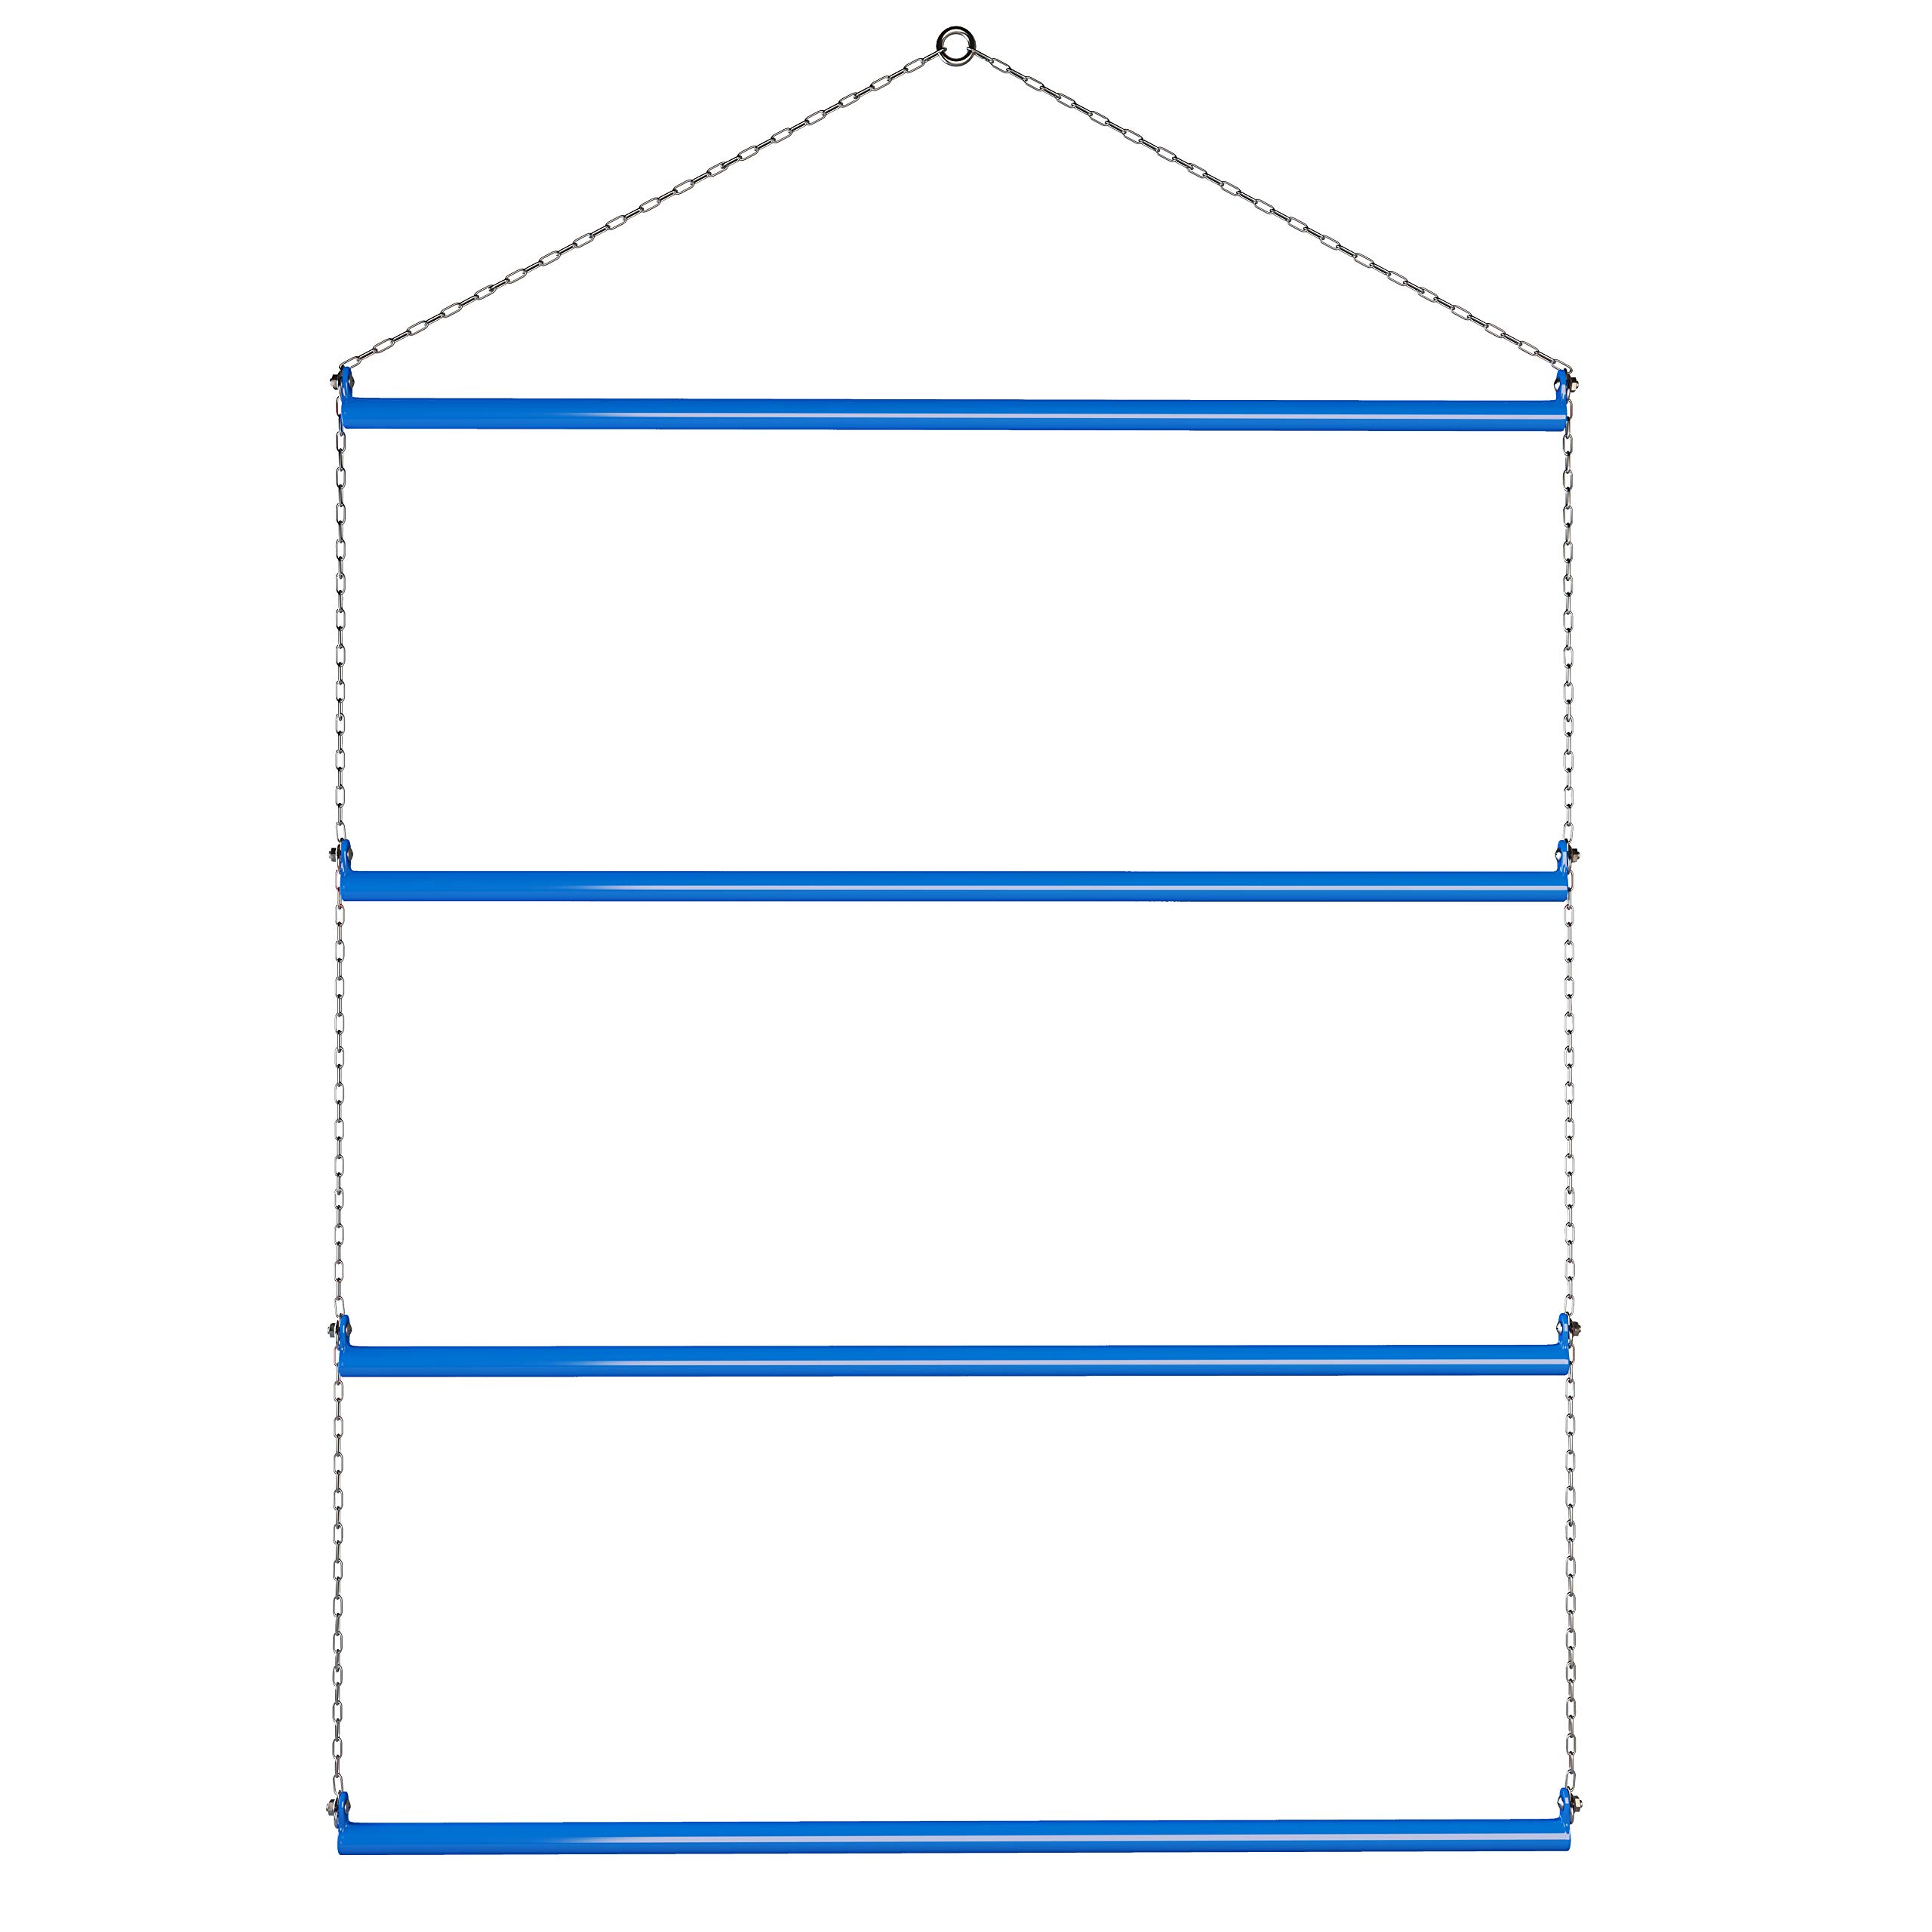 Blanket Rack 33'' (Blue). Available in Black, Blue, Red & Pink. Suitable for Horse Blankets, Saddle Blankets, Rugs & Towels. Extra Long for Western Saddle Blankets and Horse Blankets.